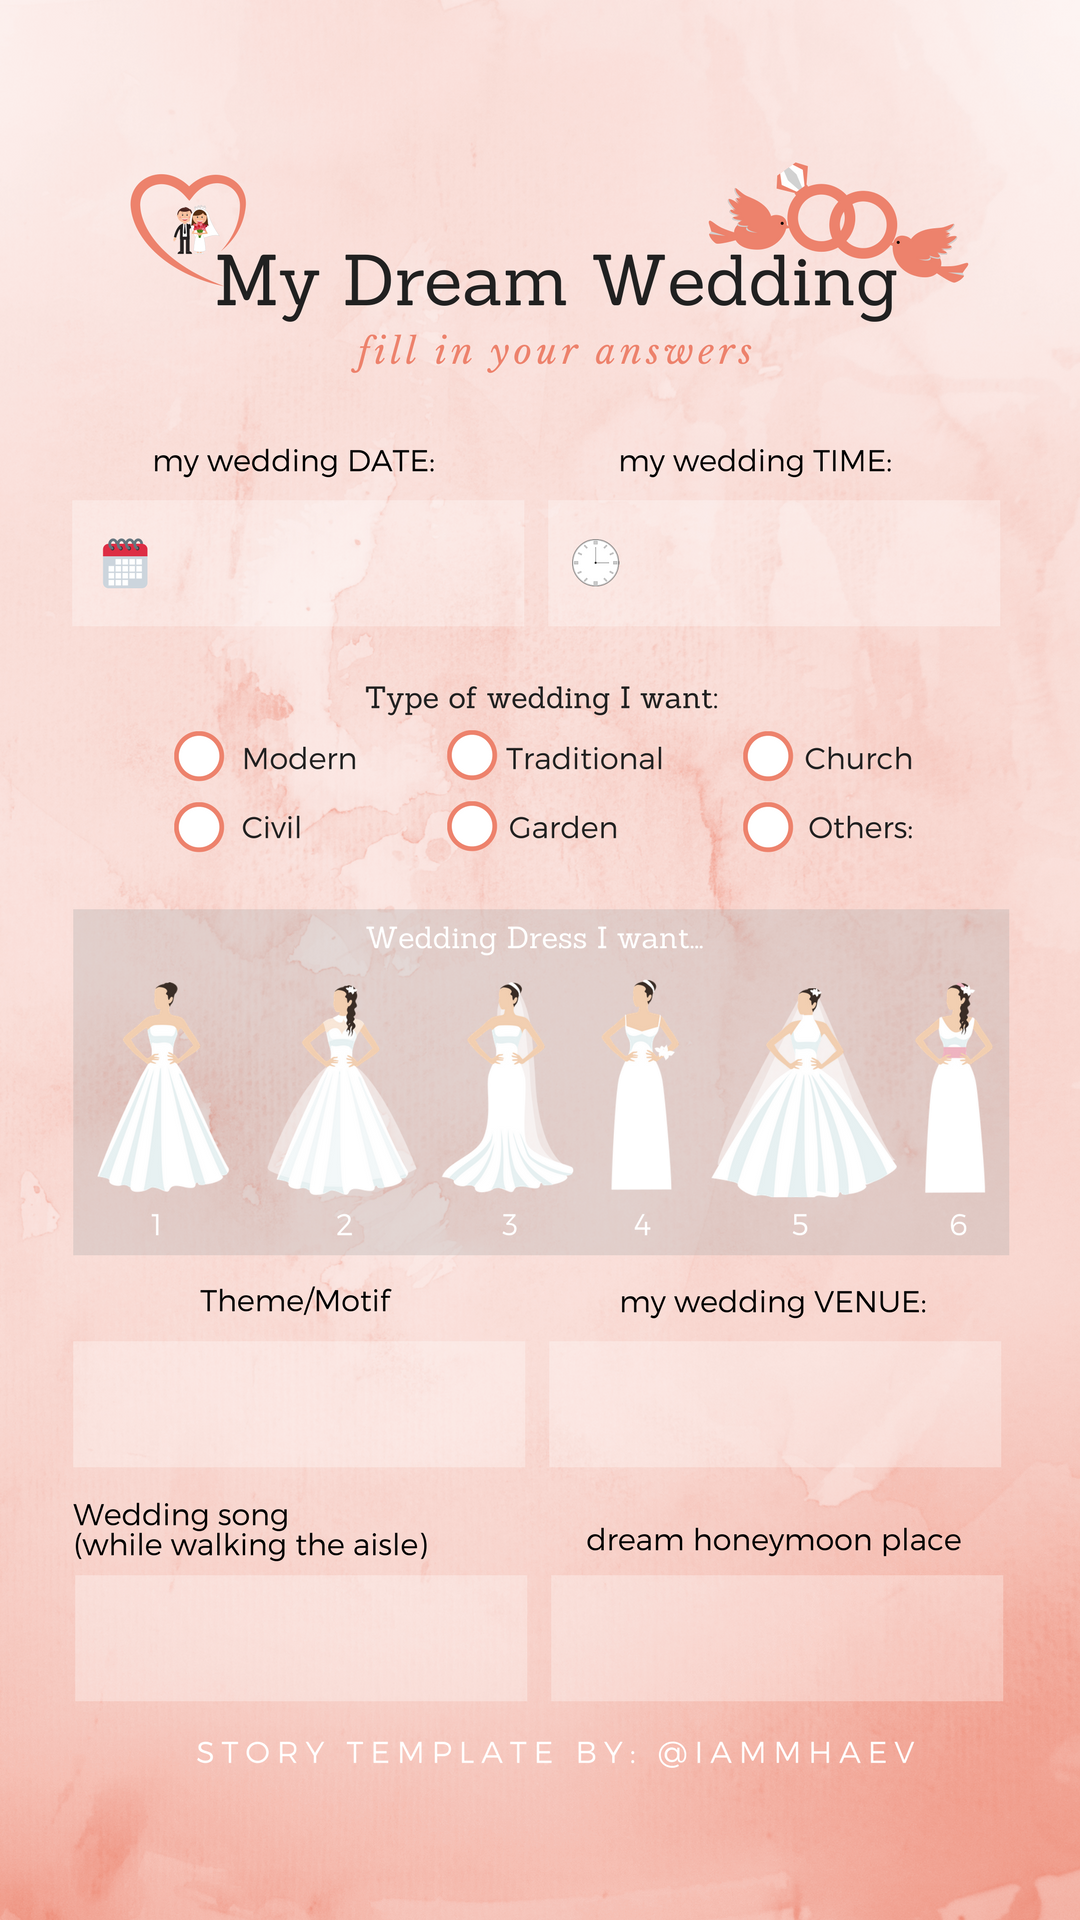 My Dream Wedding Instagram Story Templates